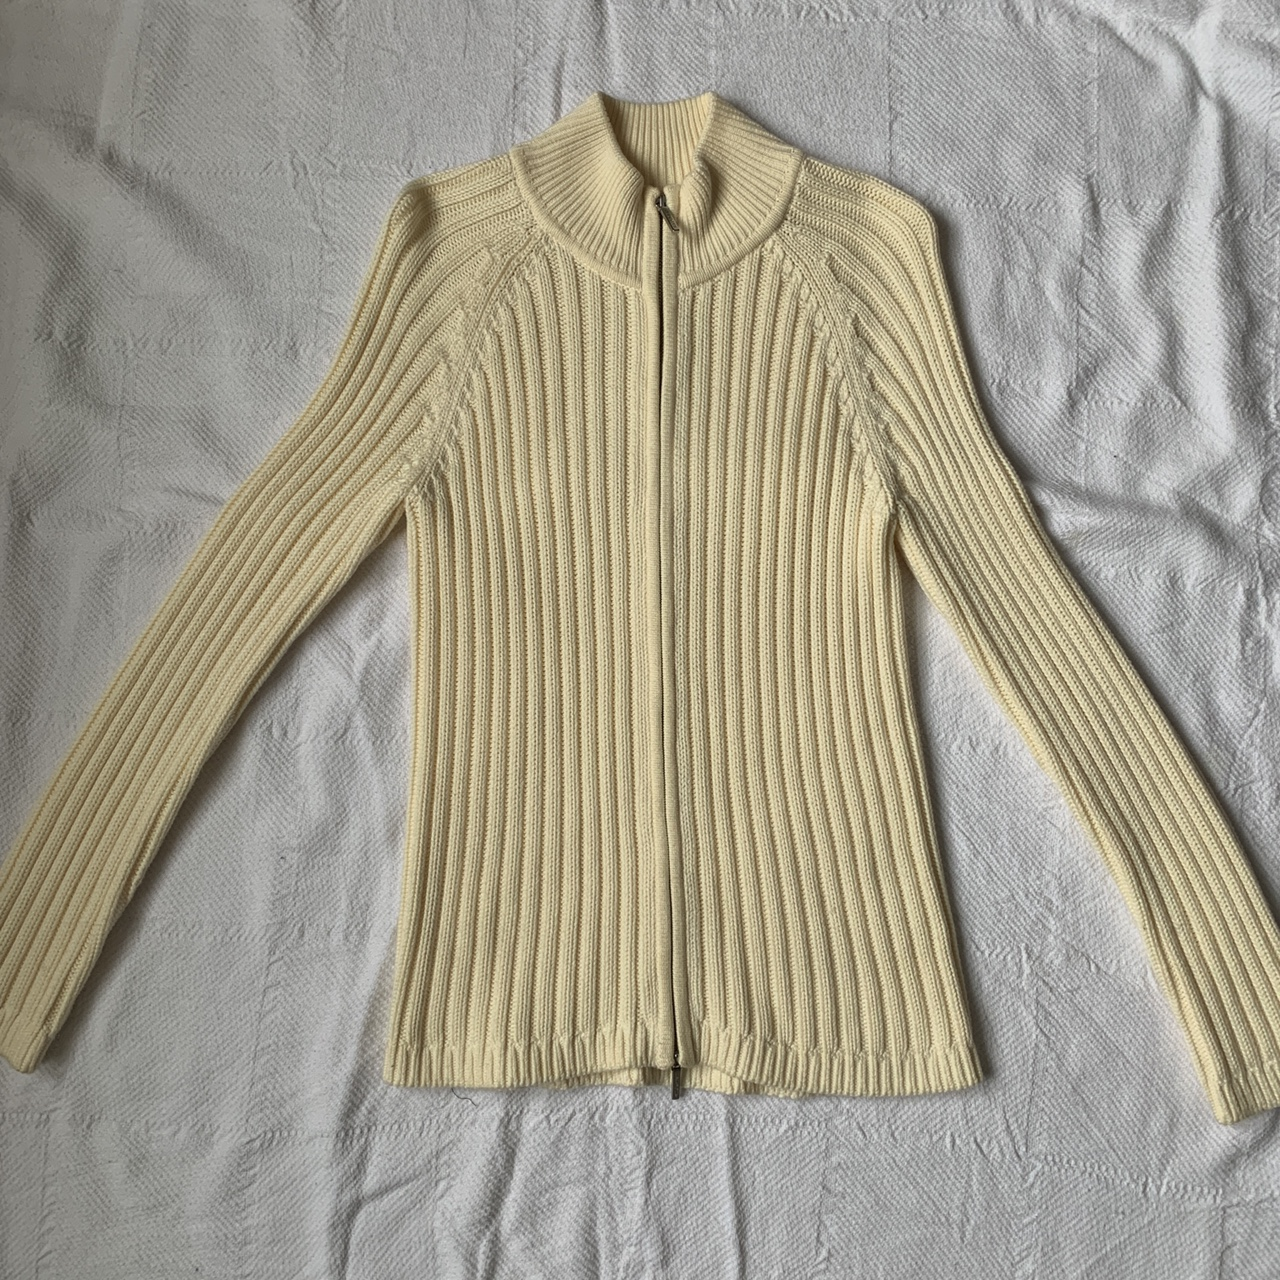 Product Image 1 - Gorgeous zip up sweater from